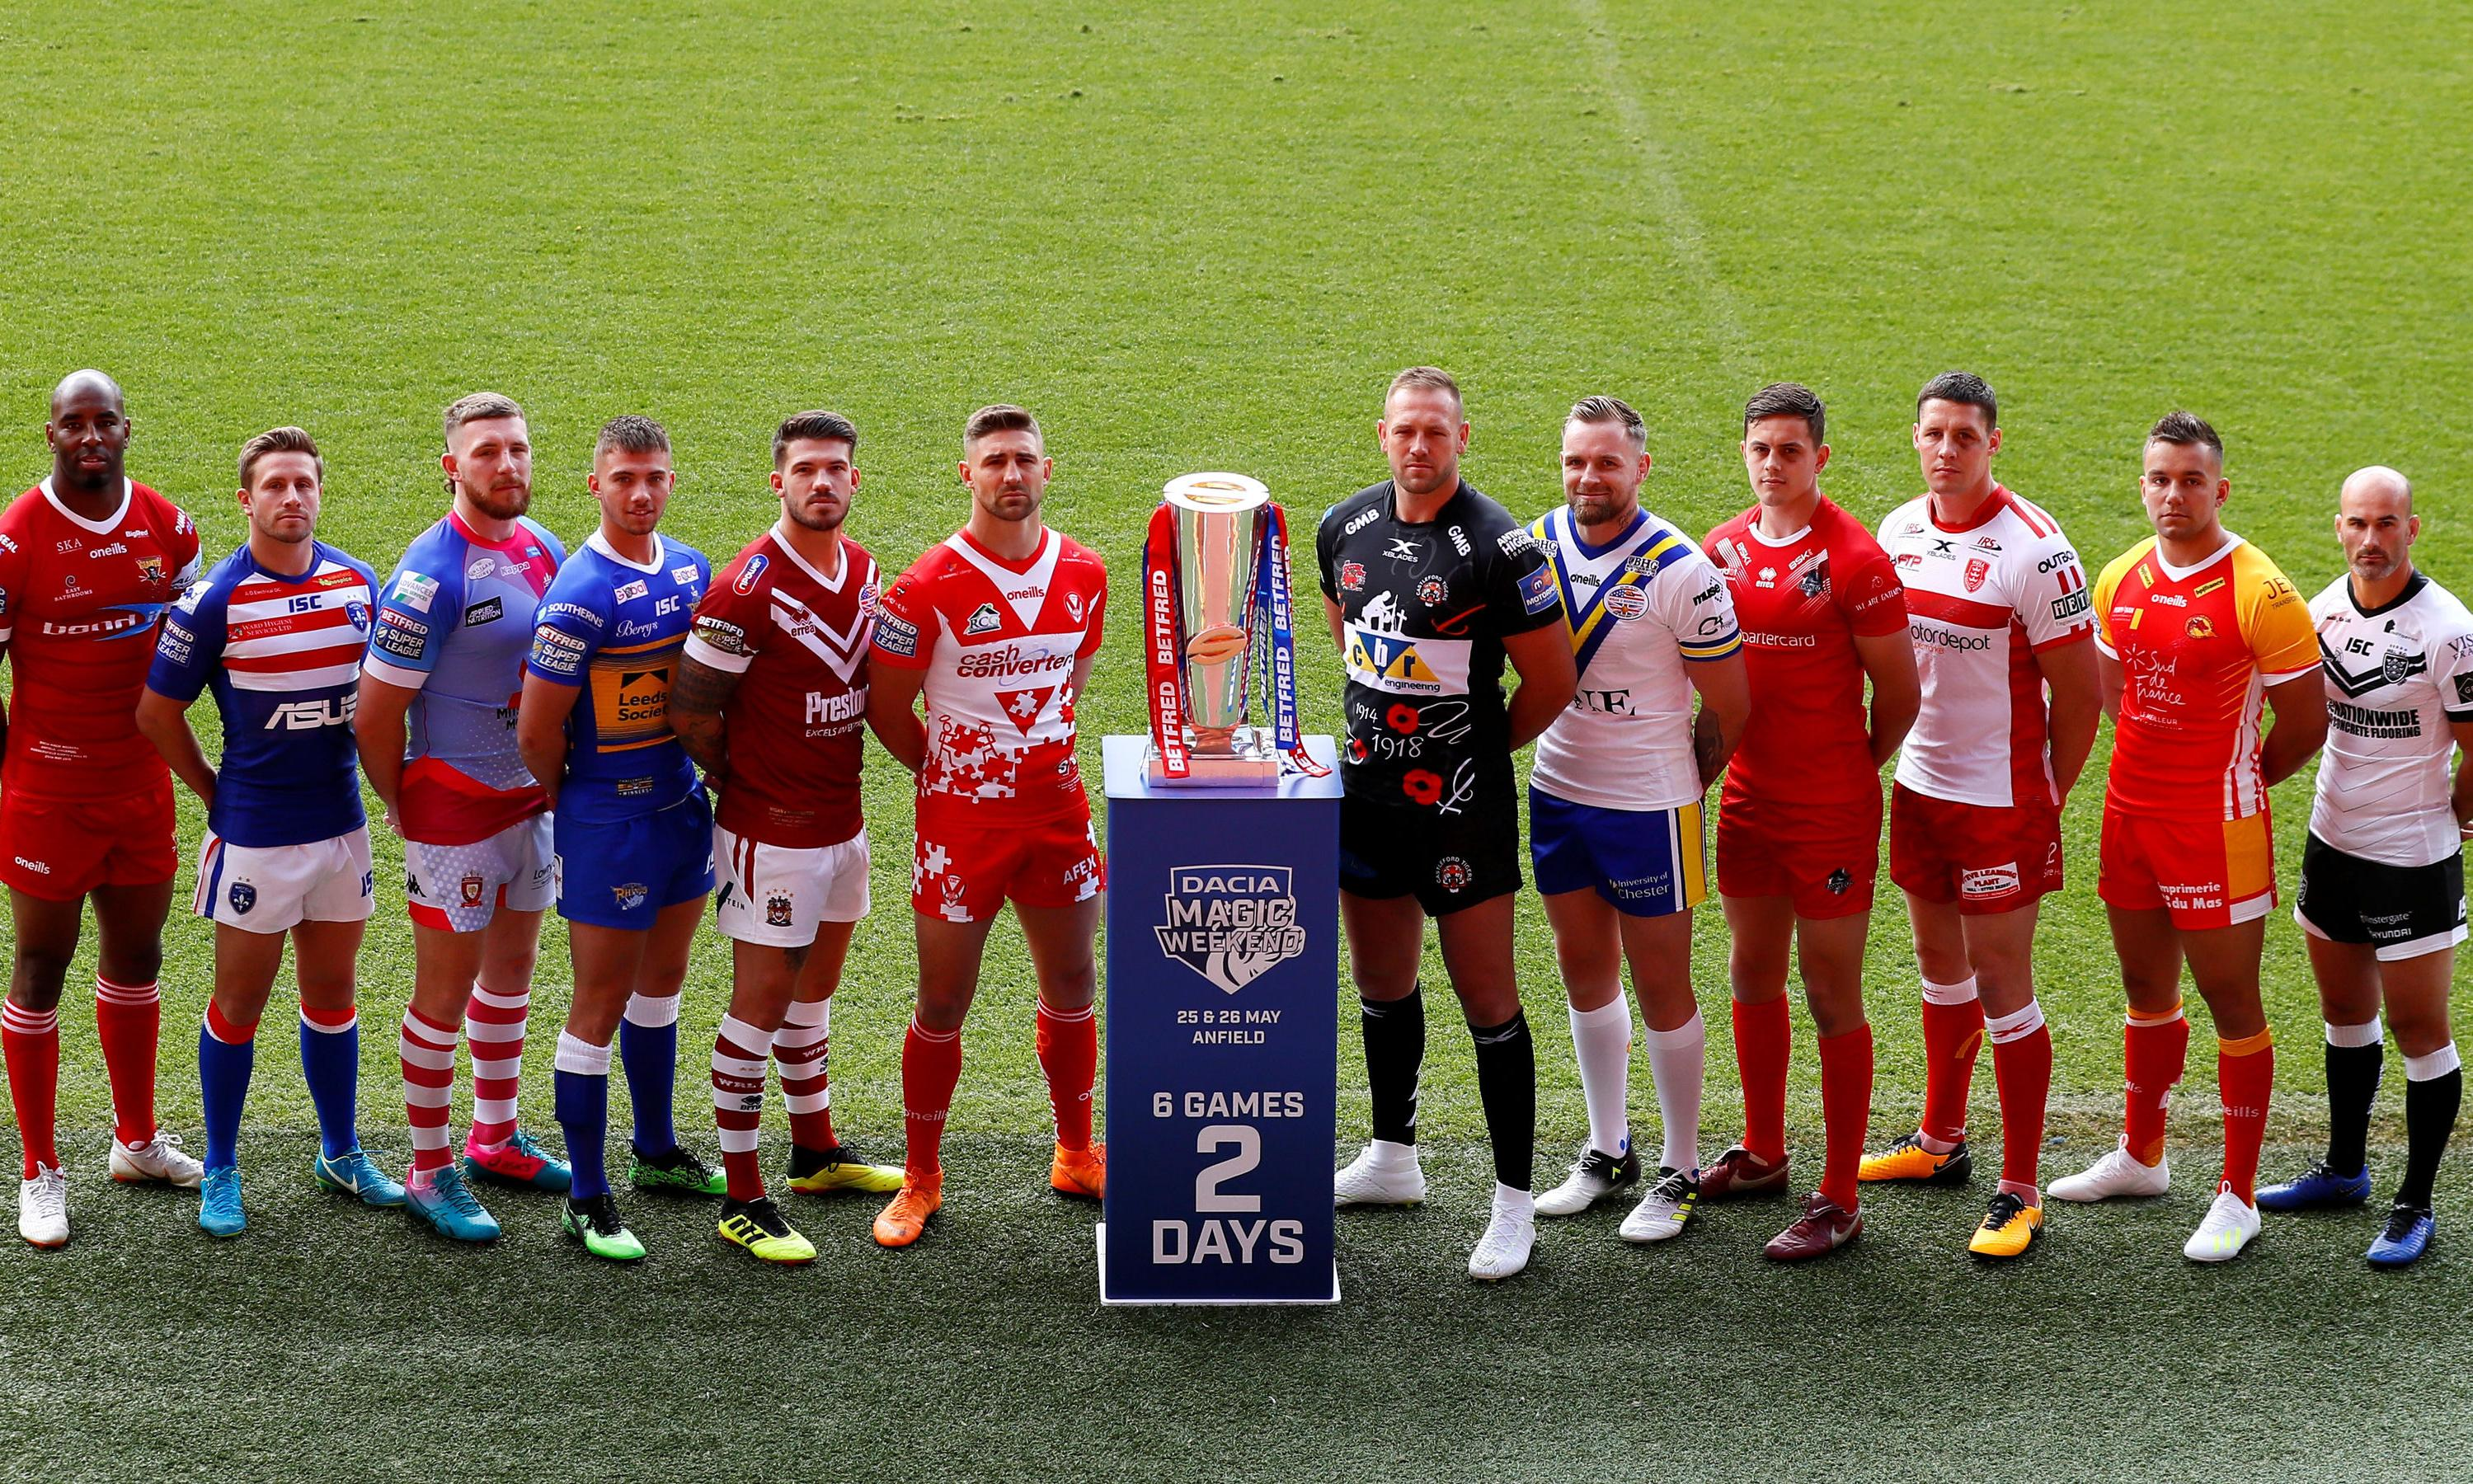 Leeds and London face a relegation scrap at Anfield in Magic Weekend